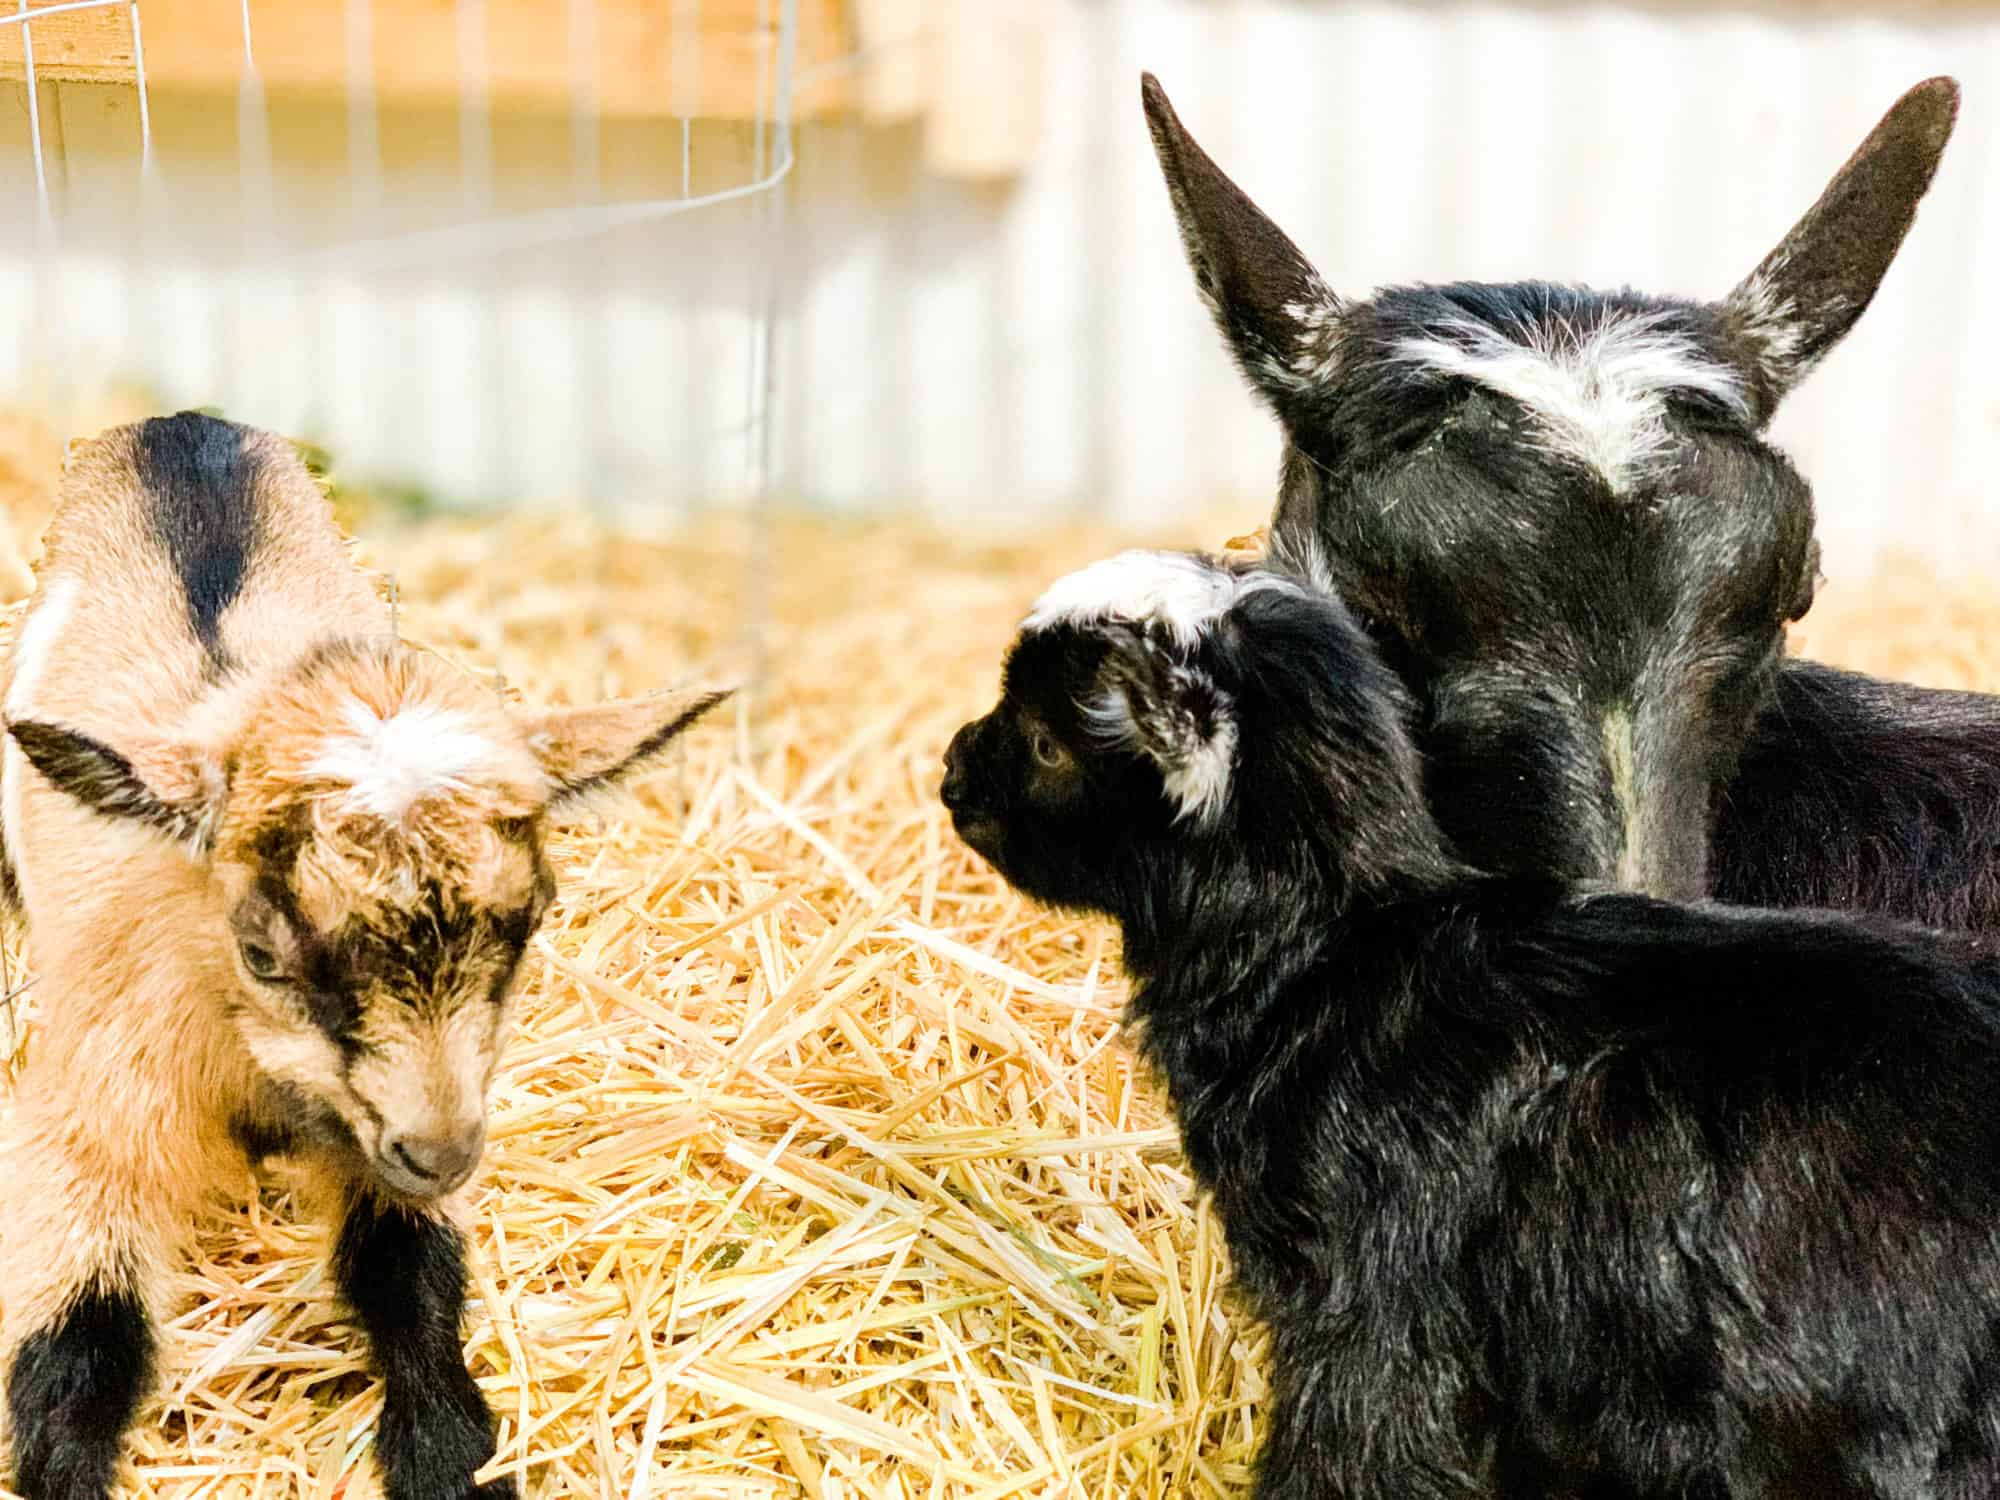 Frenchie Farm: goat labor and birth